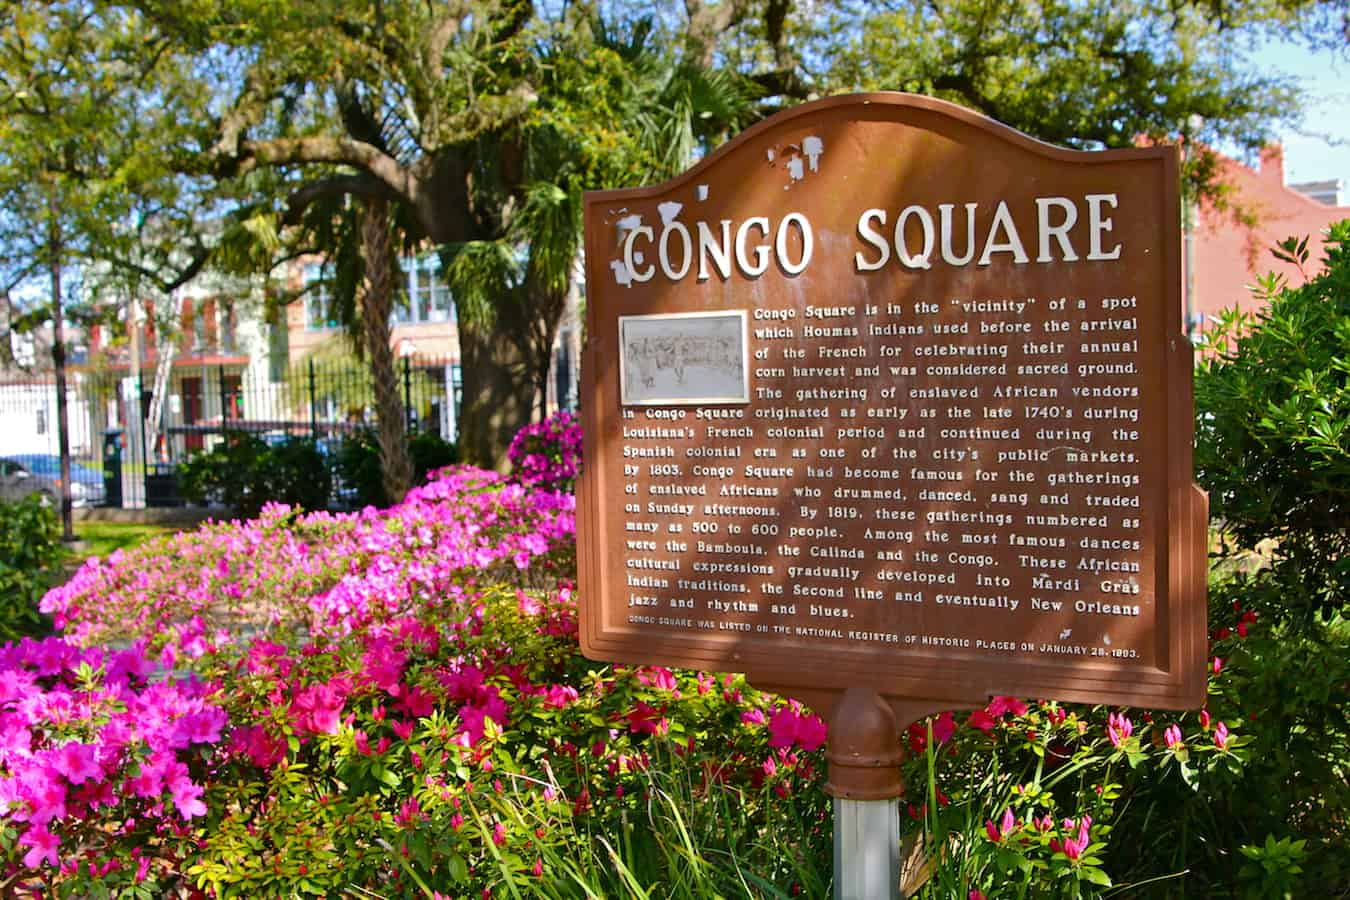 Congo Square New Orleans: the Birthplace of American Culture